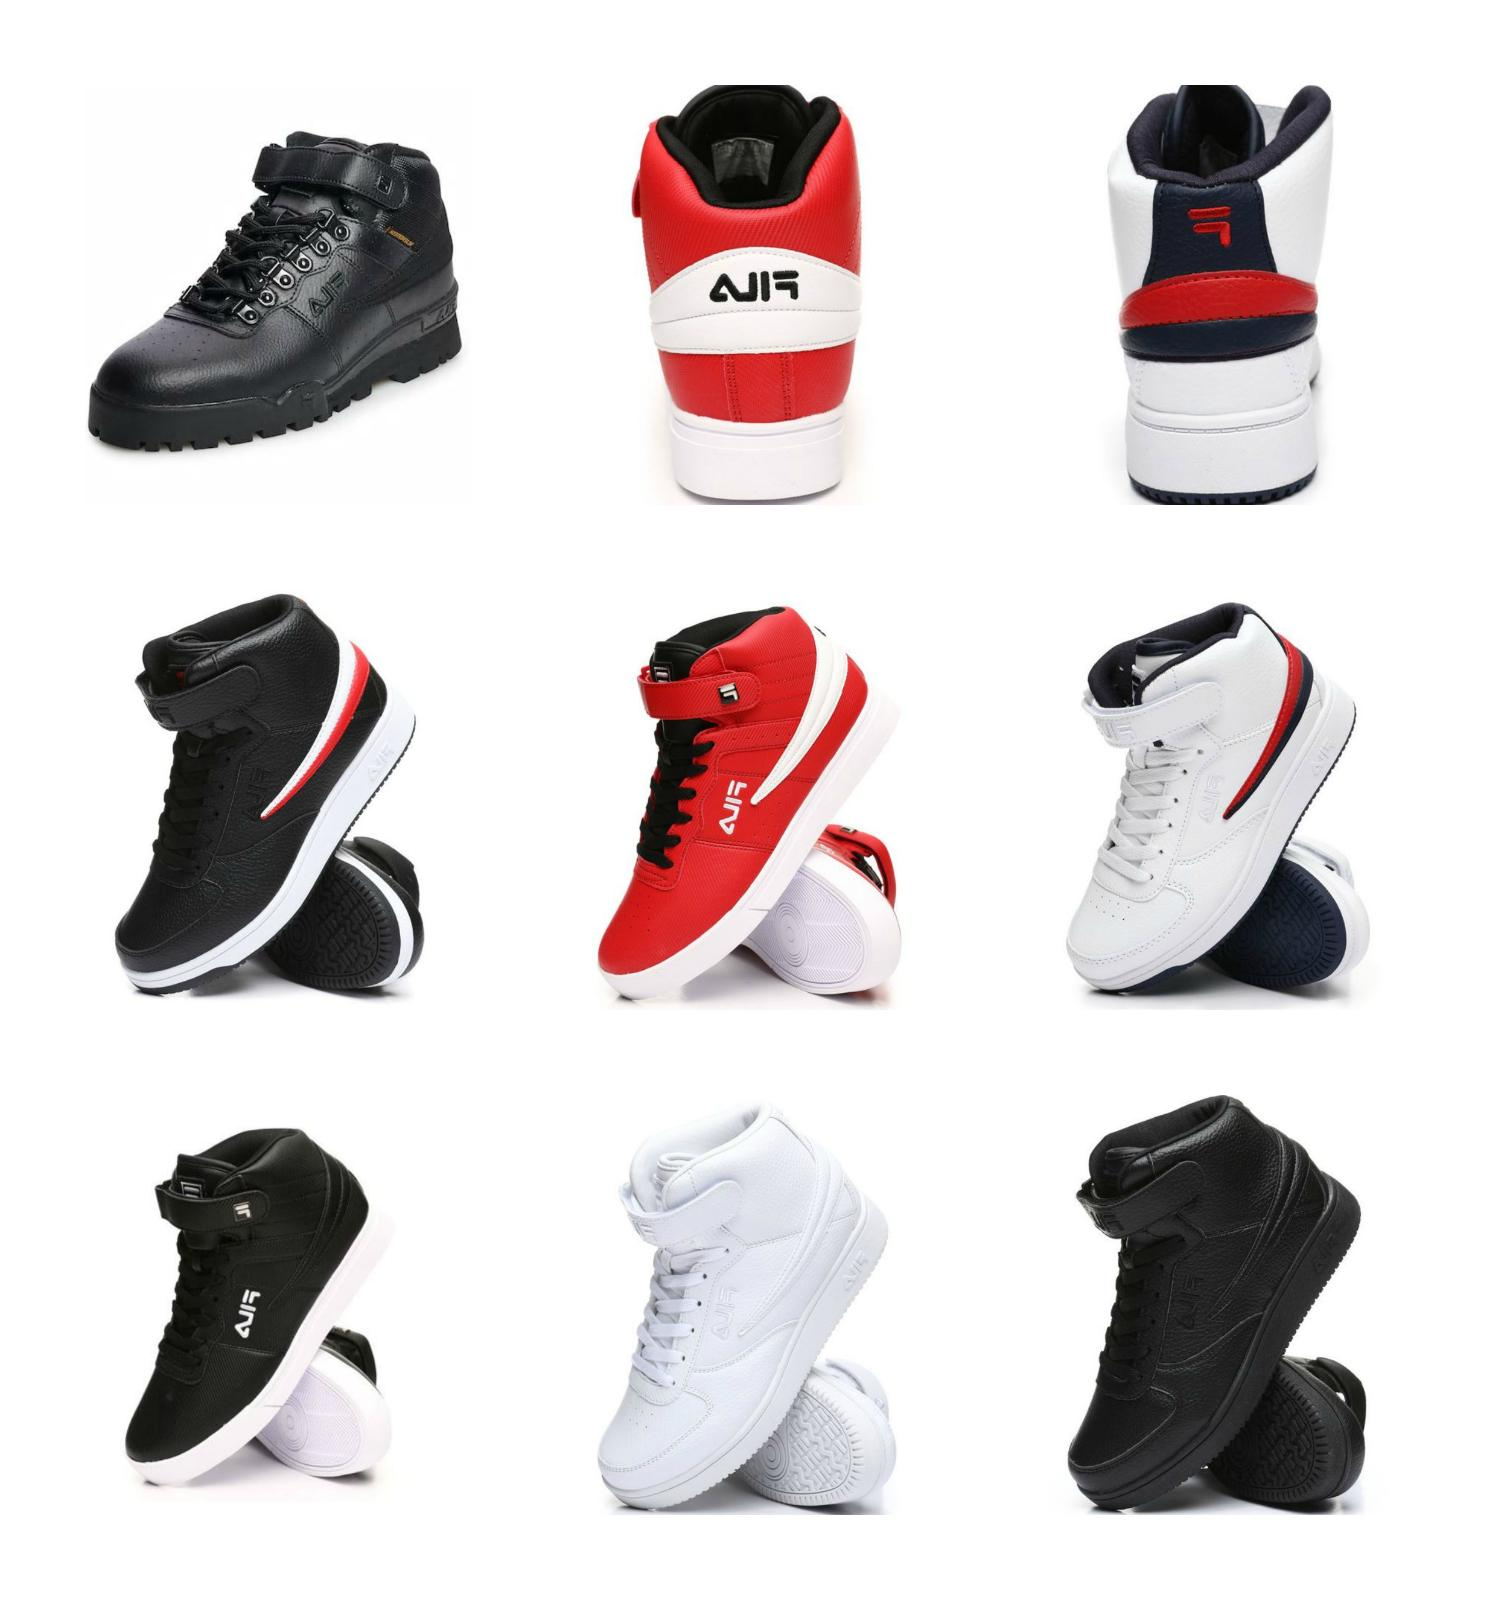 FILA Basketball Shoes Basketballshoesi  Basketballshoesi